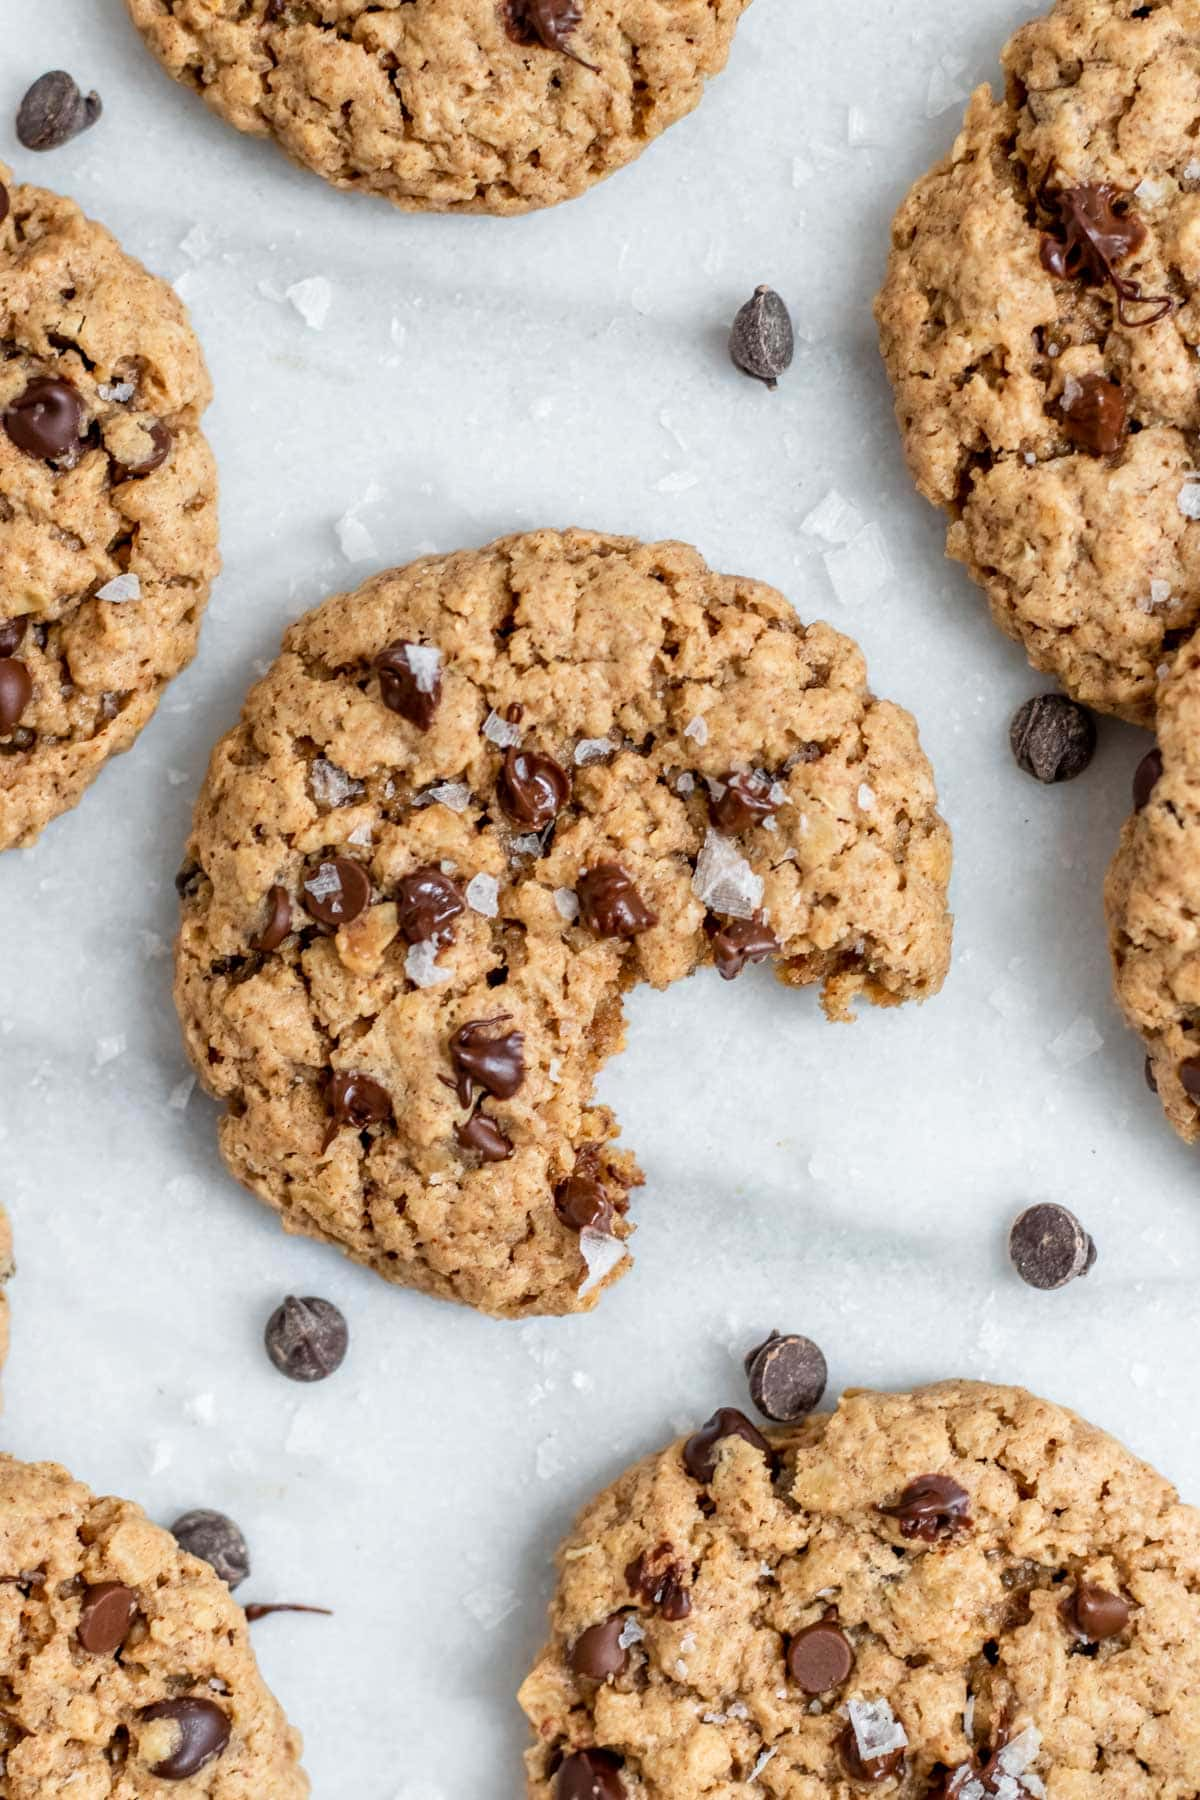 vegan oatmeal chocolate chip cookies on a marble backdrop with a bite taken out.